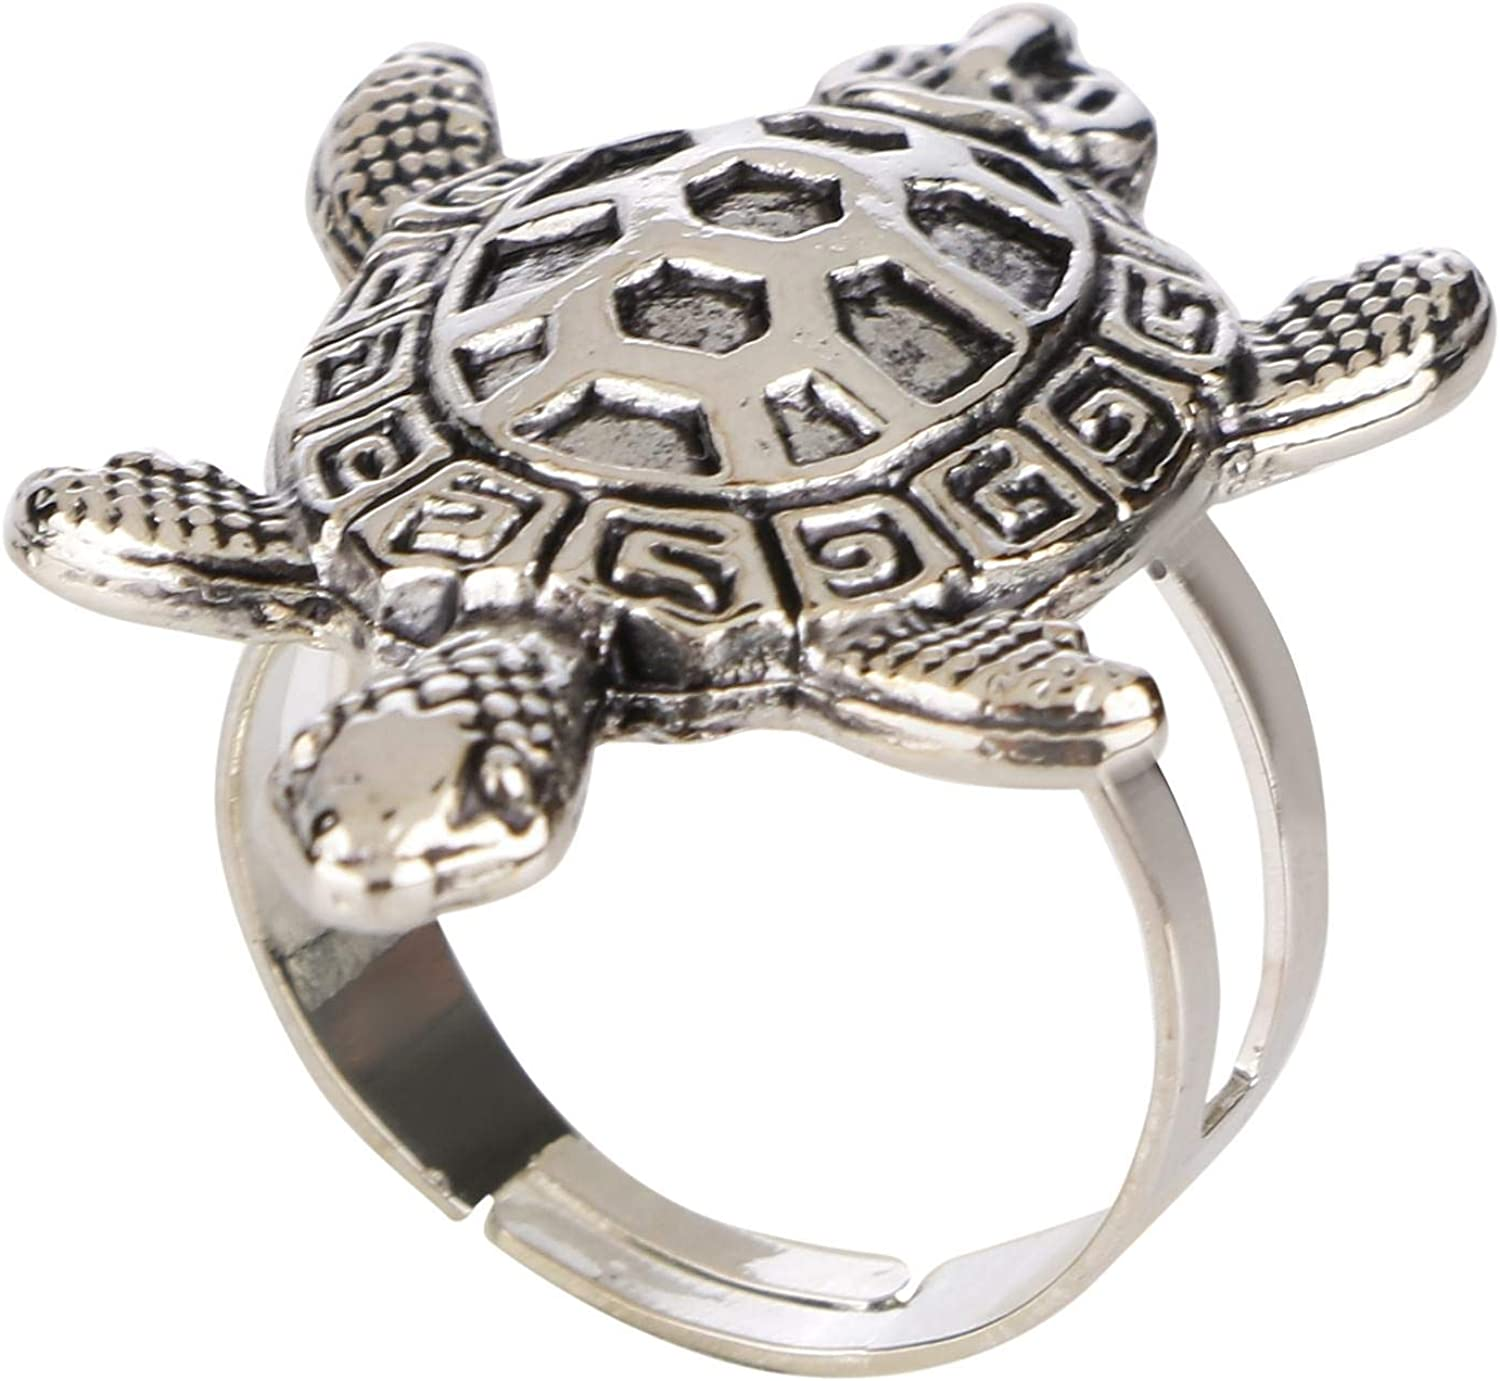 TRENDY MARCASITE TURTLE 925 STERLING SILVER RING SIZE 5-10